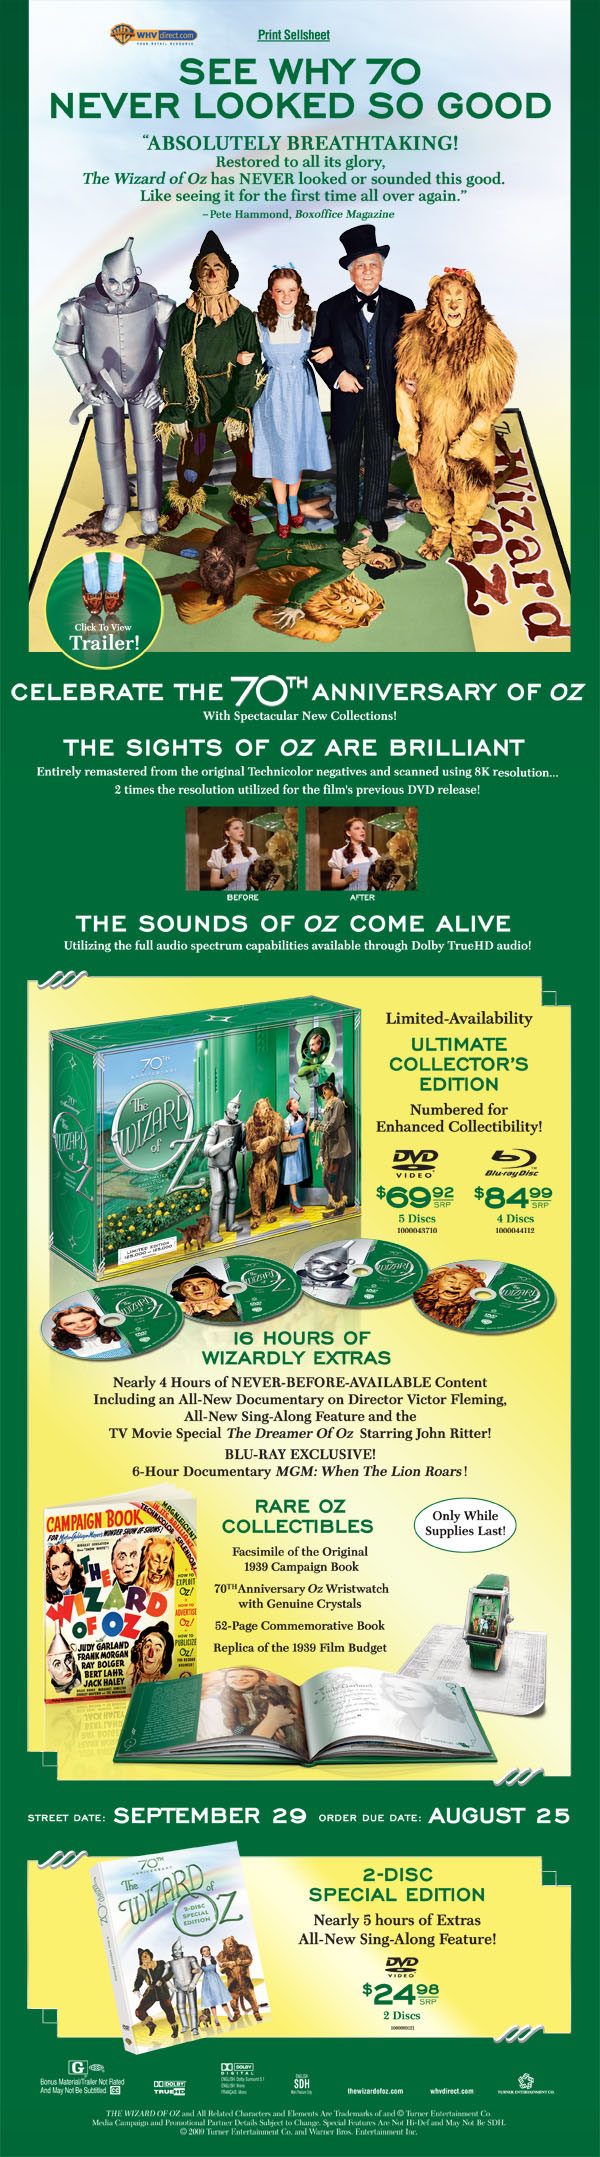 """Warner Home Video Email Flyer for the 70th Anniversary of """"The Wizard of Oz"""""""